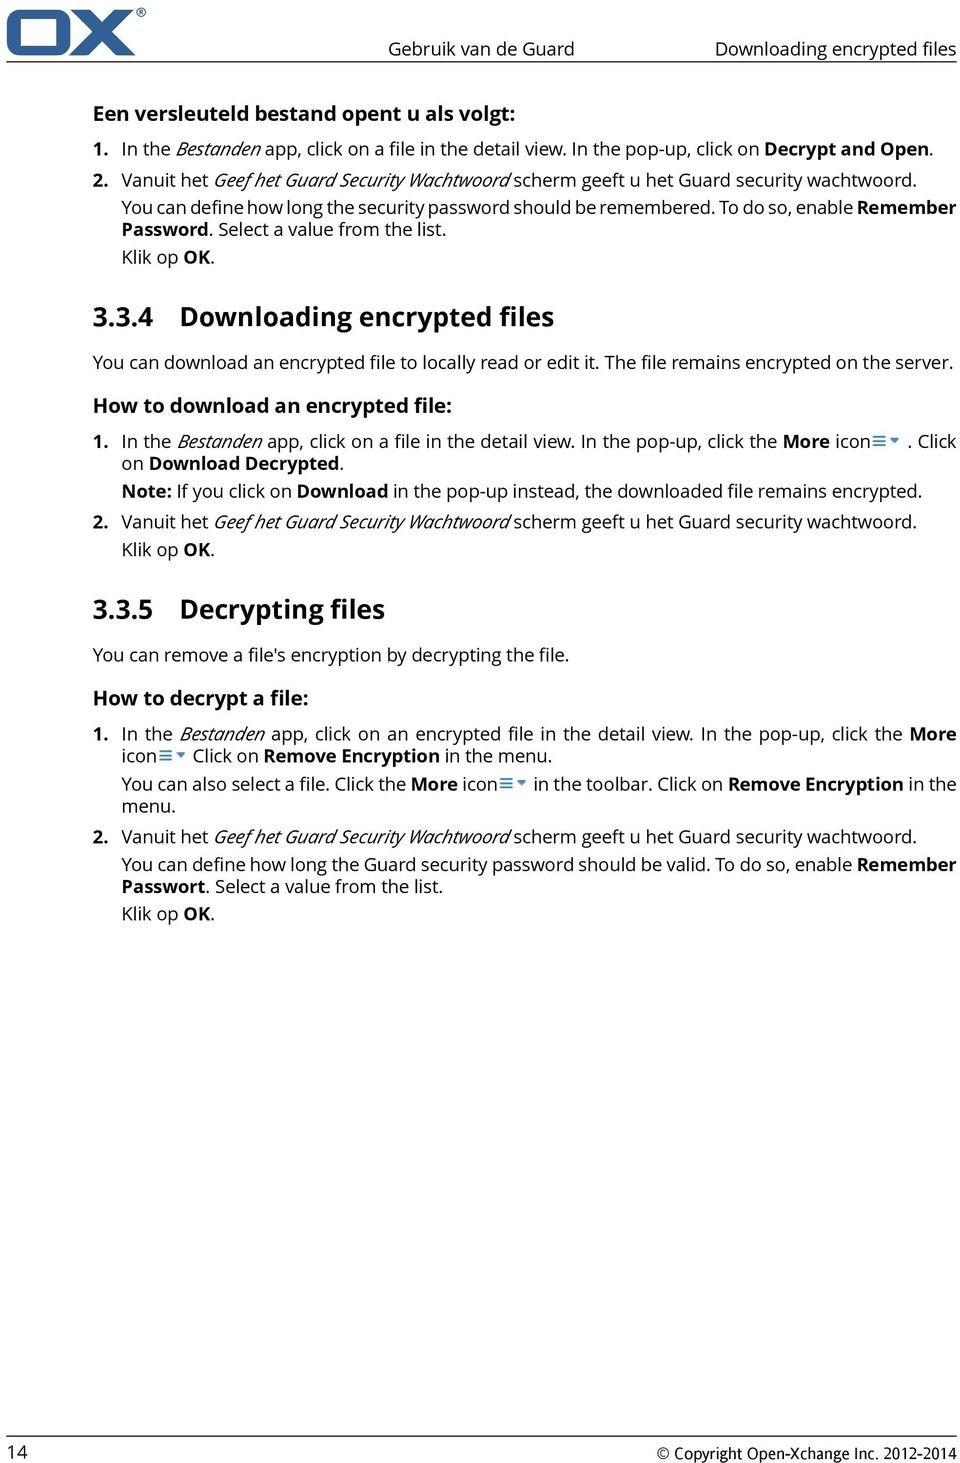 Select a value from the list. Klik op OK. 3.3.4 Downloading encrypted files You can download an encrypted file to locally read or edit it. The file remains encrypted on the server.